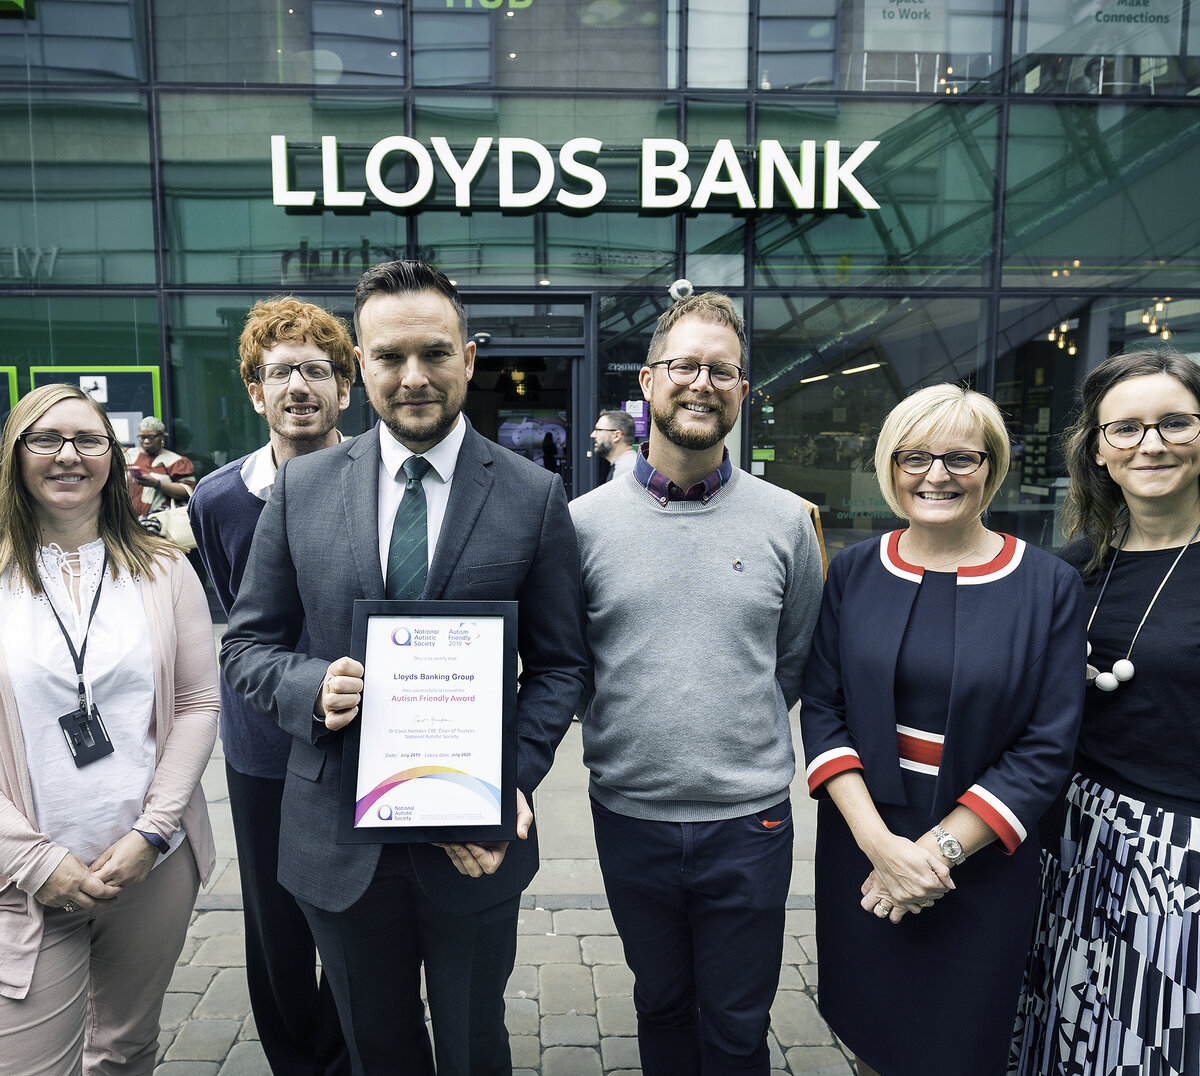 40315   National Autistic Society   18/7/19  Autism Friendly Awards presentation to Lloyds at Lloyds Bank Hub branch , Market Street , Manchester. L-R  Anne Dowle, proposition manager branch design, James Hargreaves area director of Lloyd's bank Manchester and Merseyside , Leo Capella, autism access specialist with the  National Autistic Society , Richard Forster, senior bank manager and Tom Purser , head of campaigns with the National Autistic Society , Catherine Rutter, MD of  Connect and Holly Pearce , senior manager of  group disability programme with Lloyd's banking group.